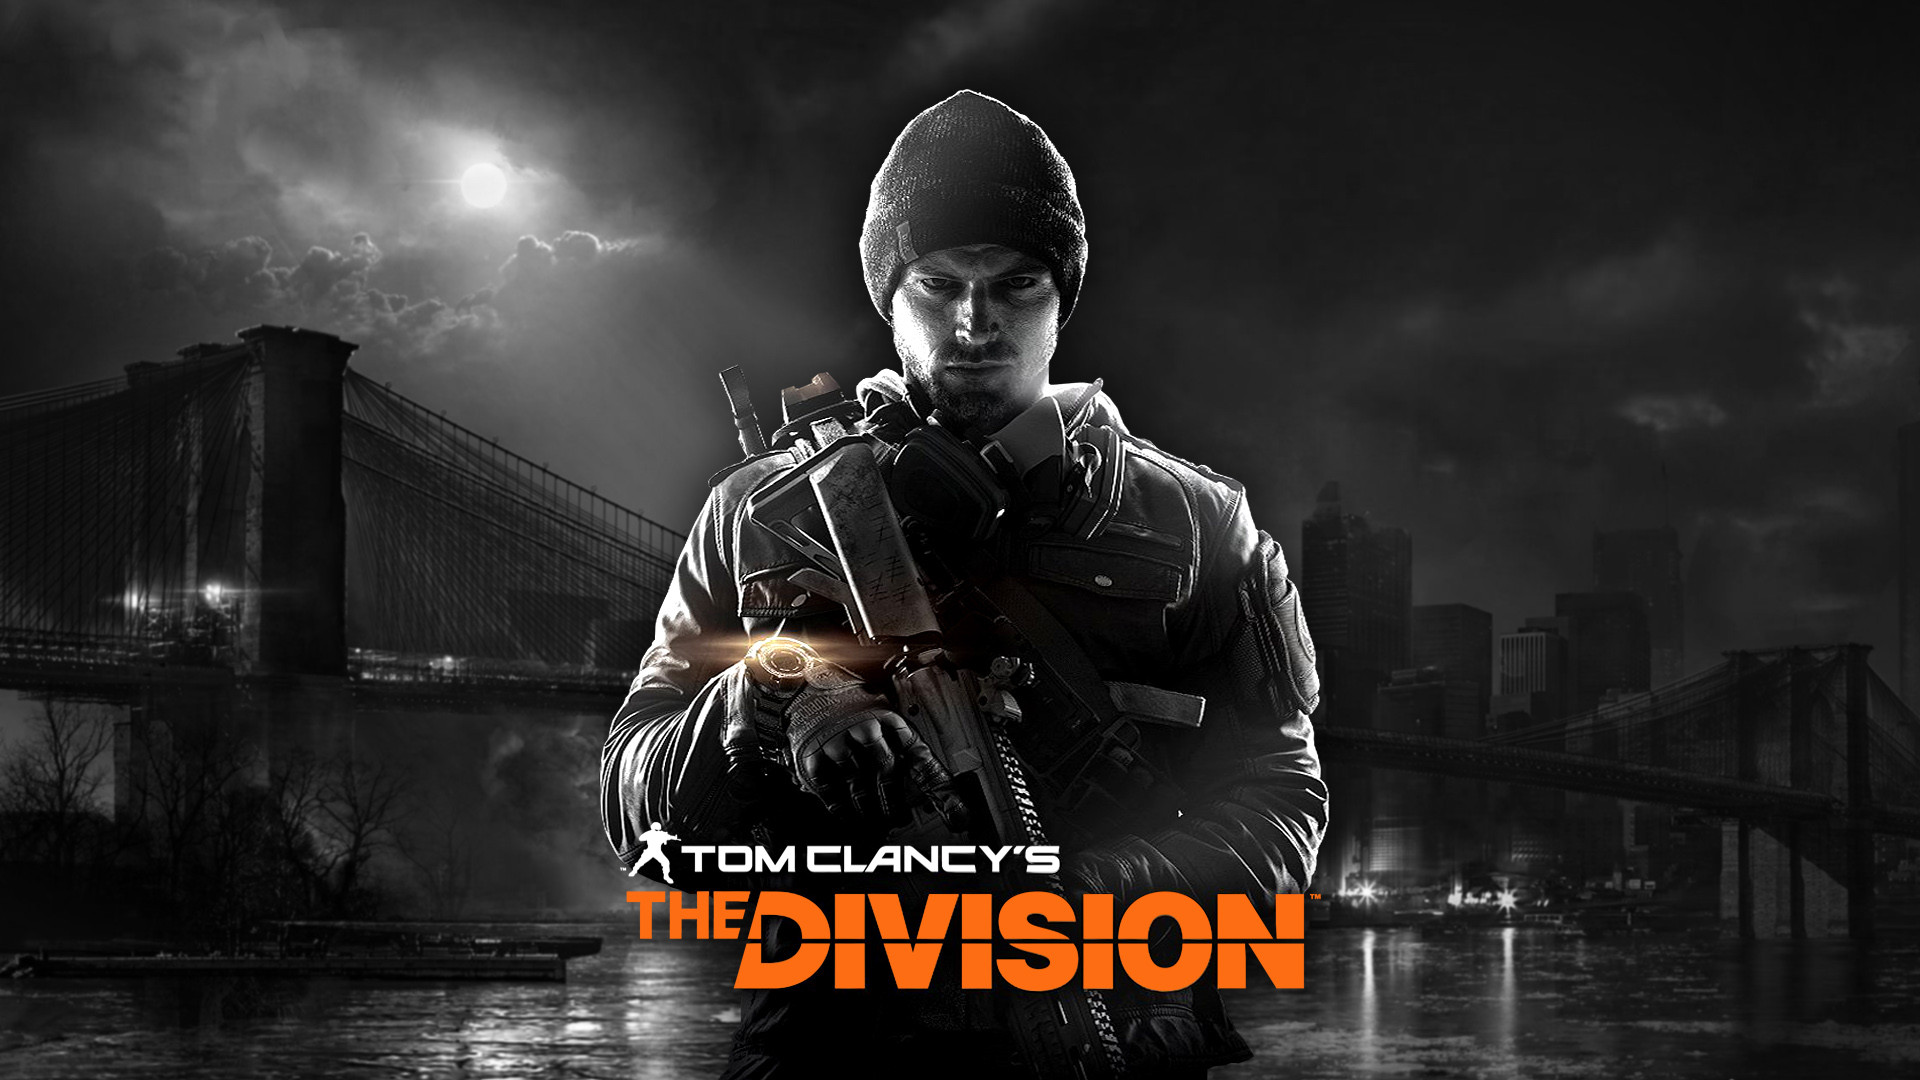 The Division Full HD Wallpaper 1920×1080